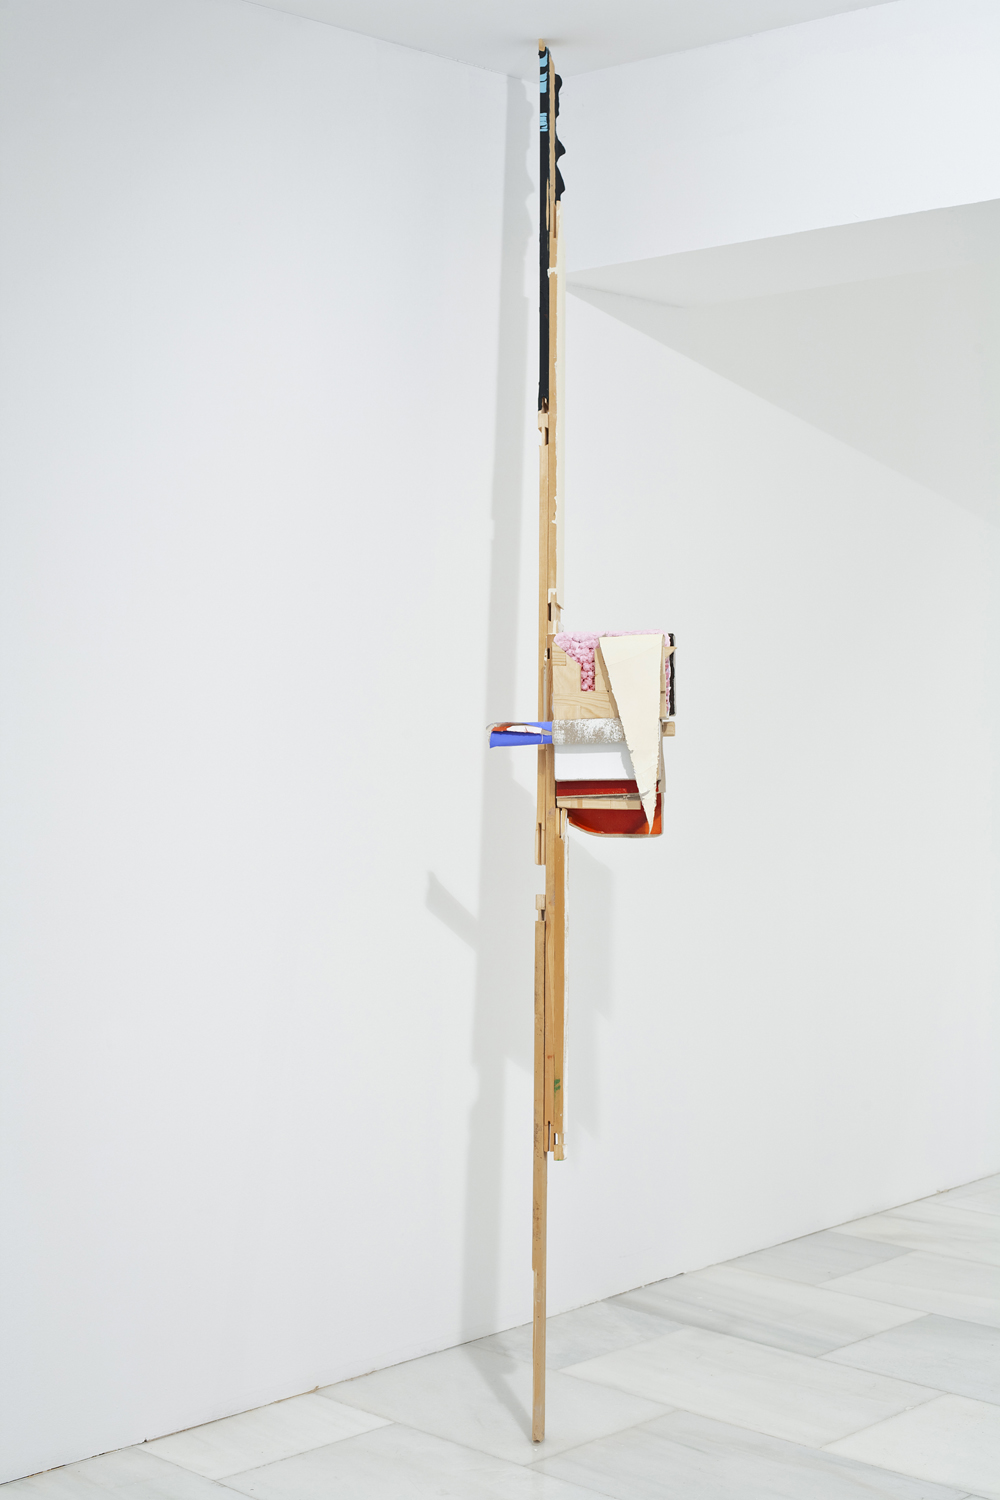 Señal II, 2010, trials and leftovers of several painting attached with canvas, 59 x 27 x 18 cm